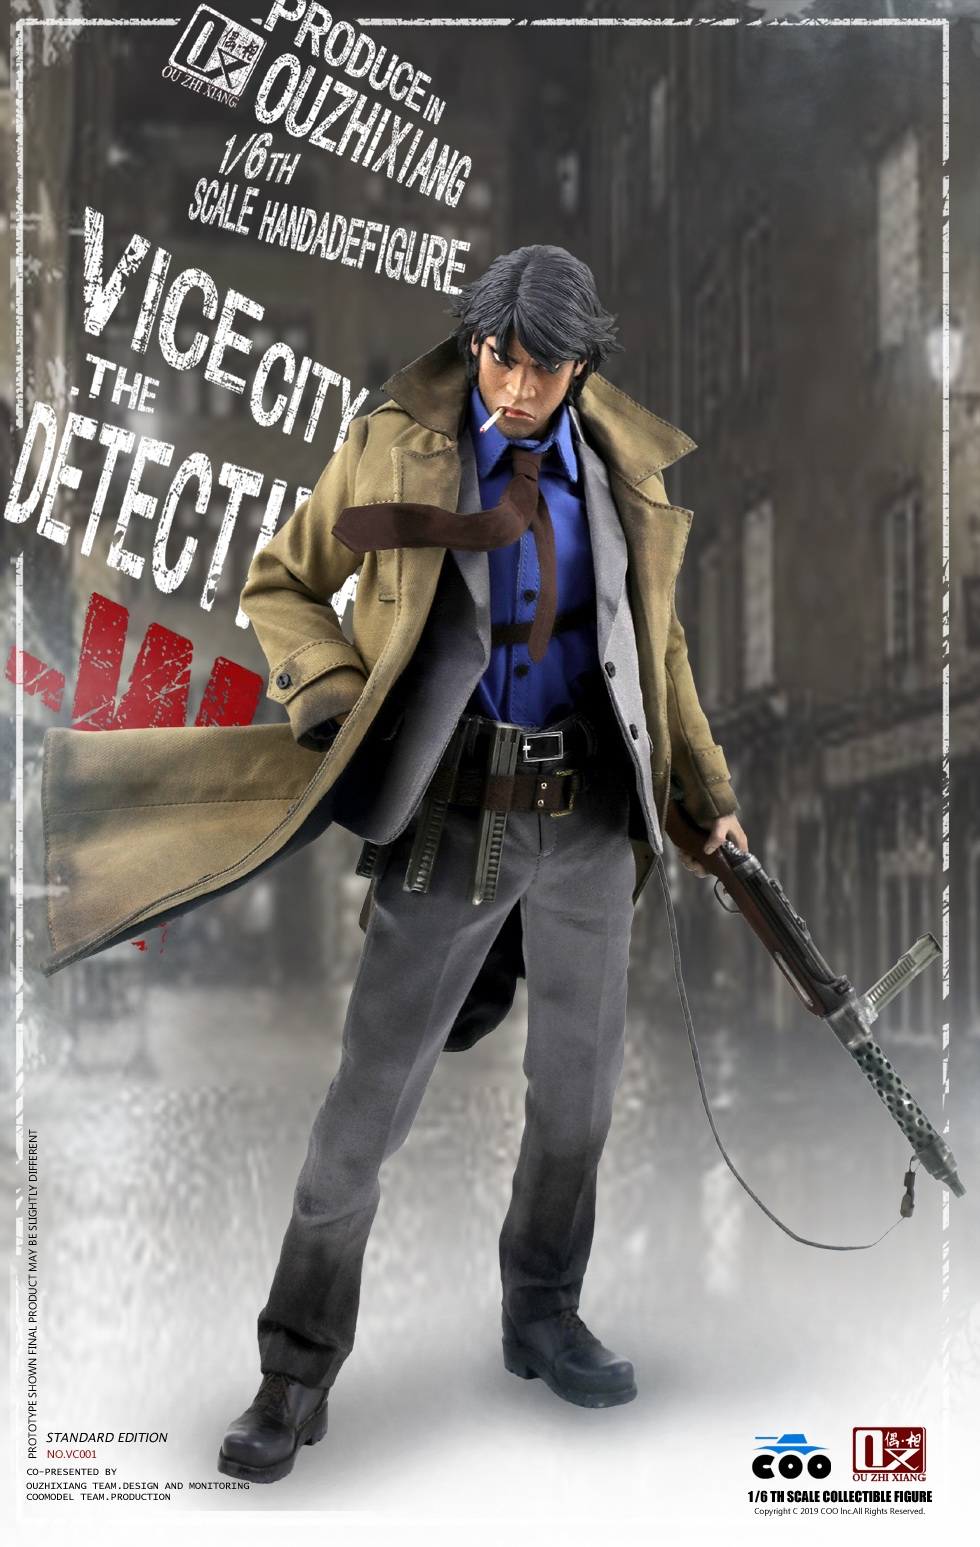 DetectiveW - NEW PRODUCT: COOMODEL X Even: 1/6 Vice City - Detective W [Standard Edition & Collector's Edition] - Four-headed configuration 20261710